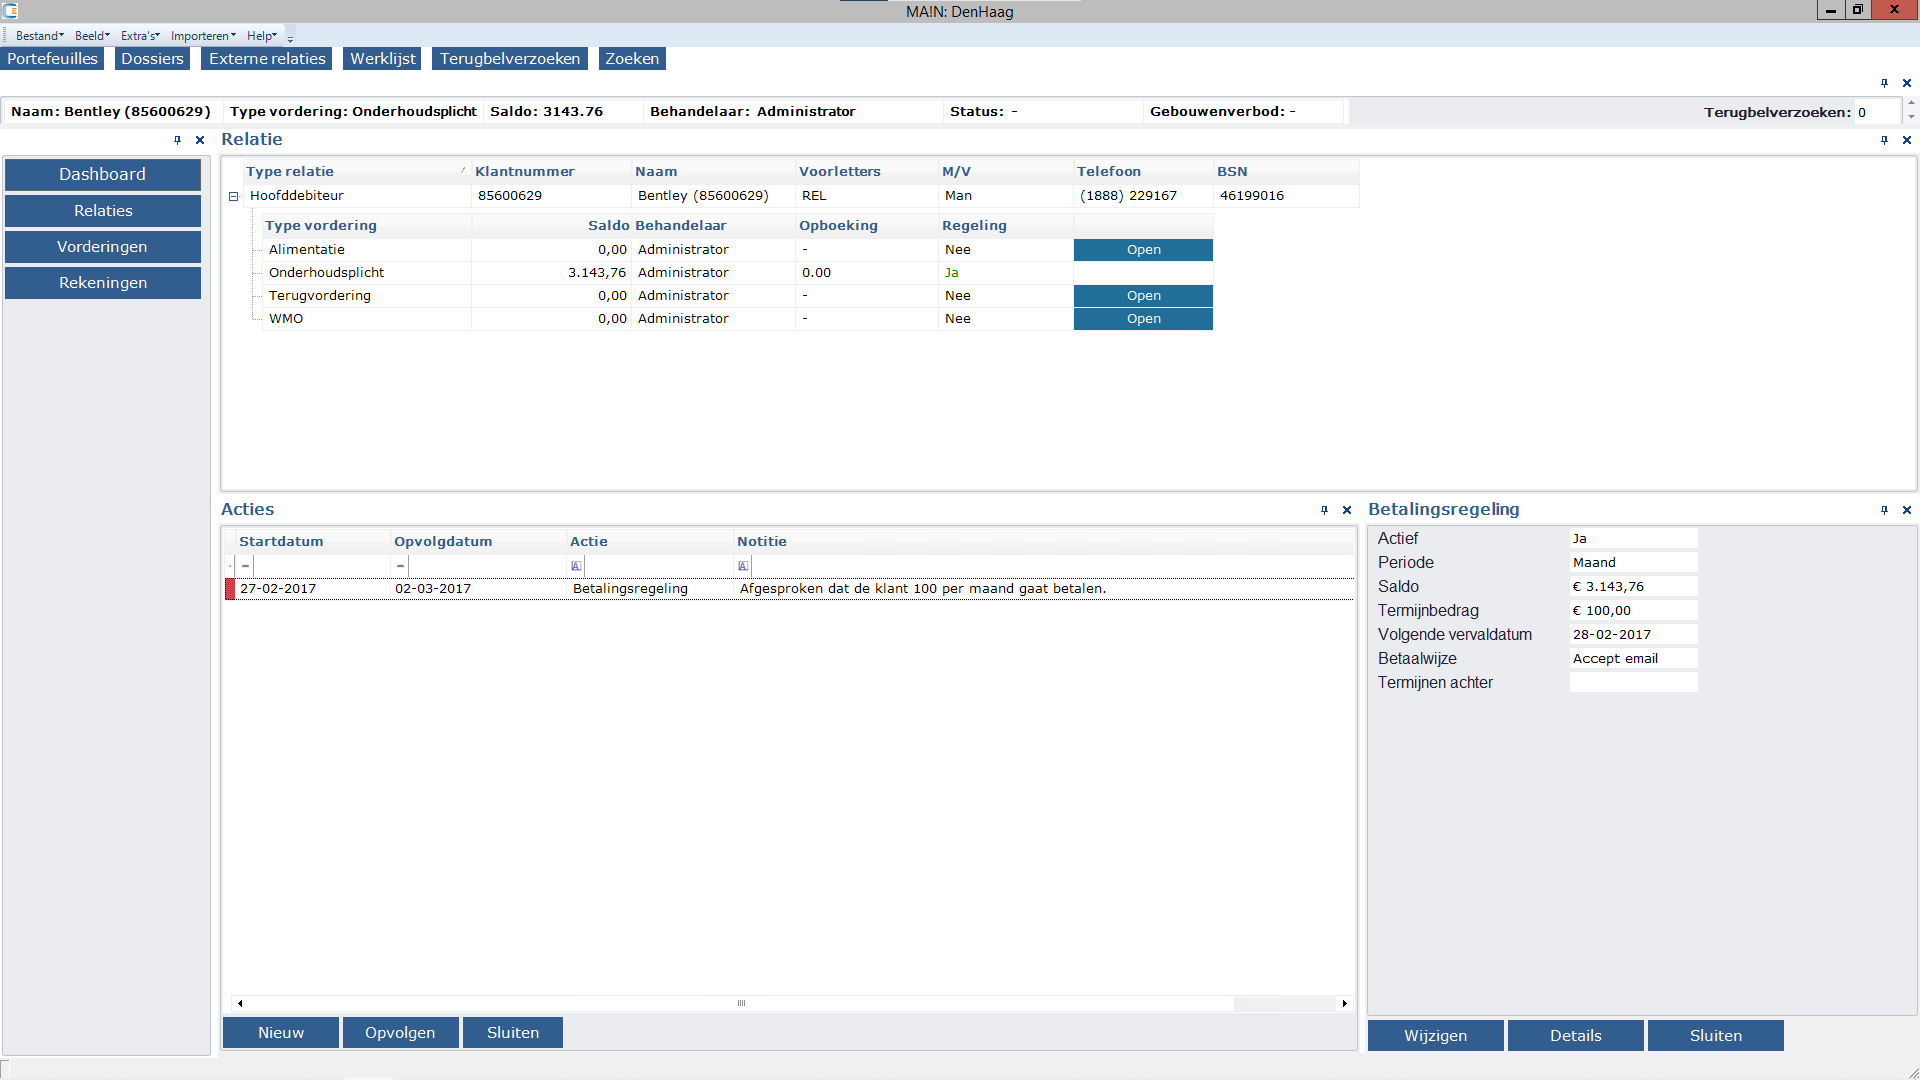 image of a customized user interface in the MAIN credit management software